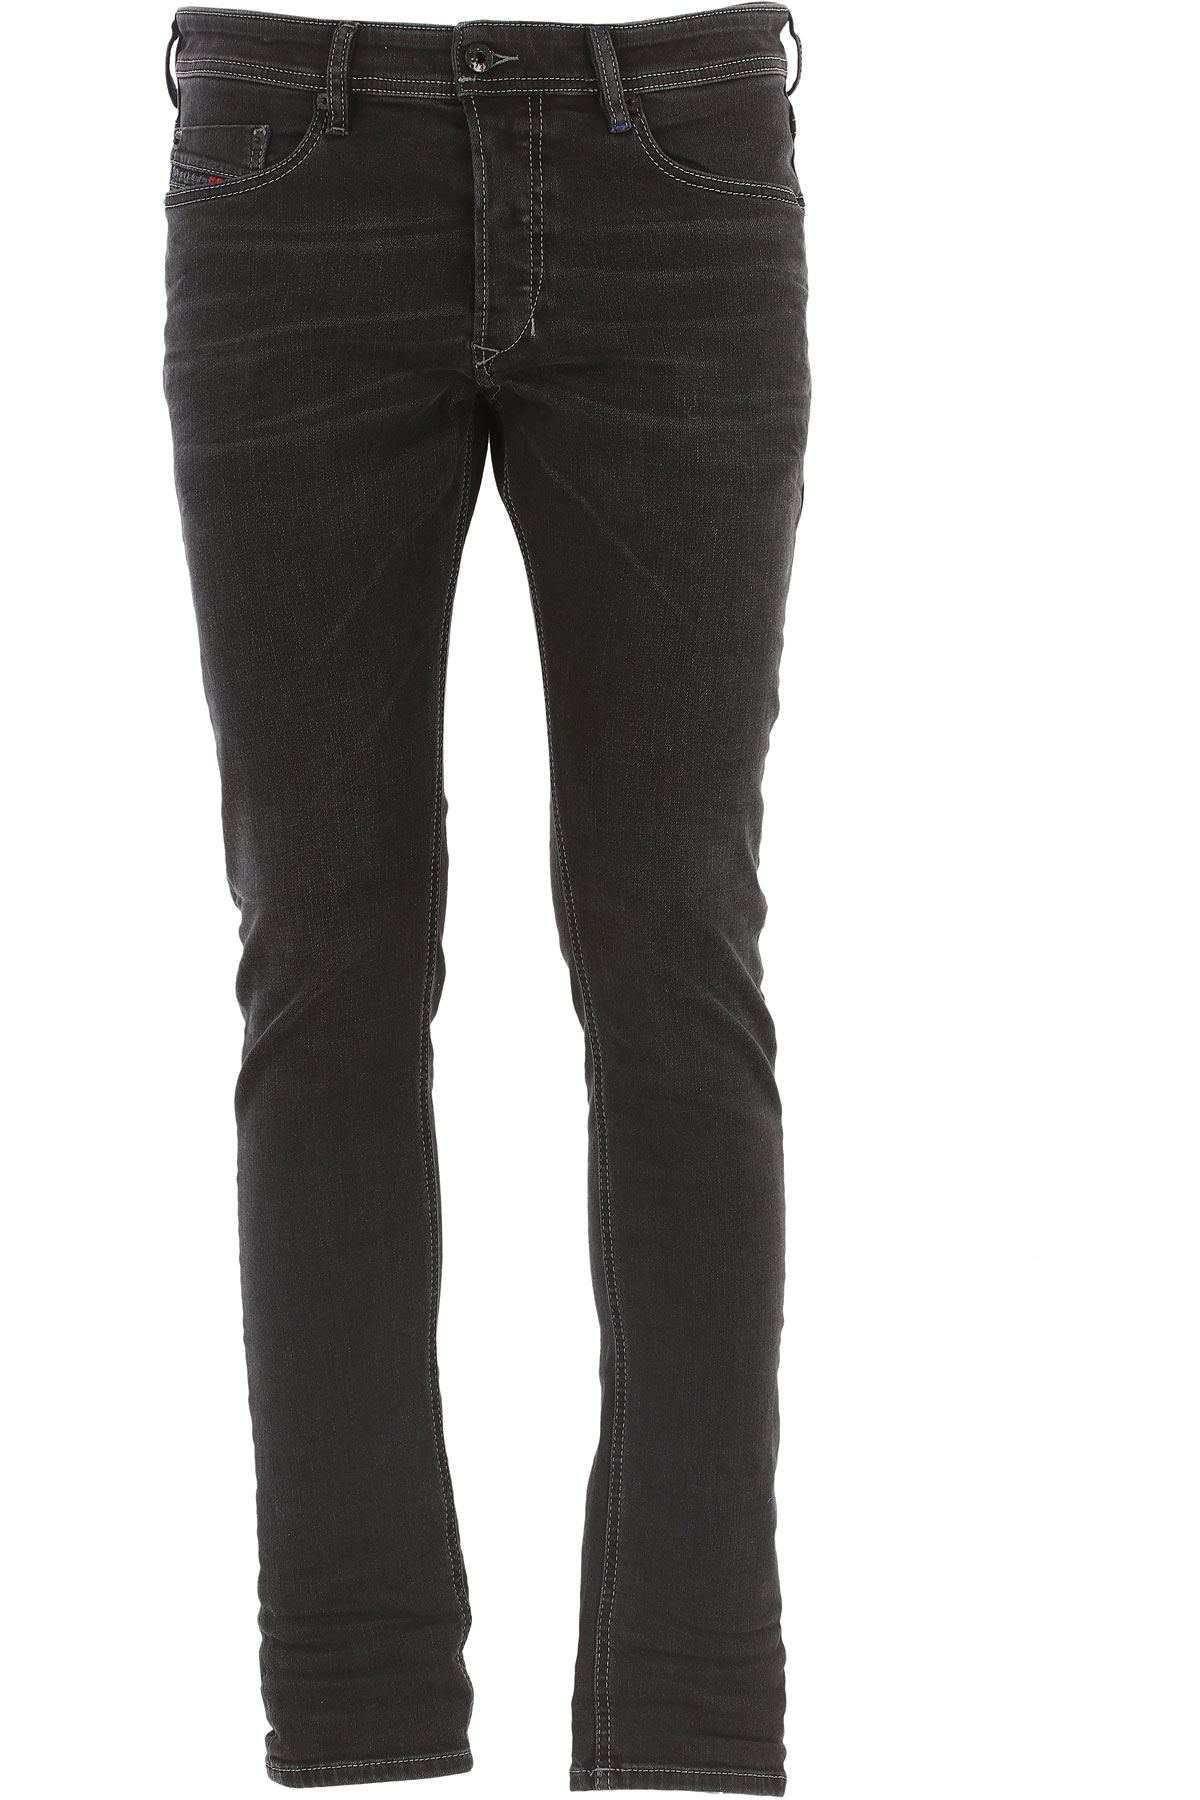 Diesel Jeans On Sale in Outlet, Tepphar Carrot, Dimgray, Cotton, 2017, 30 31 32 33 USA-410529